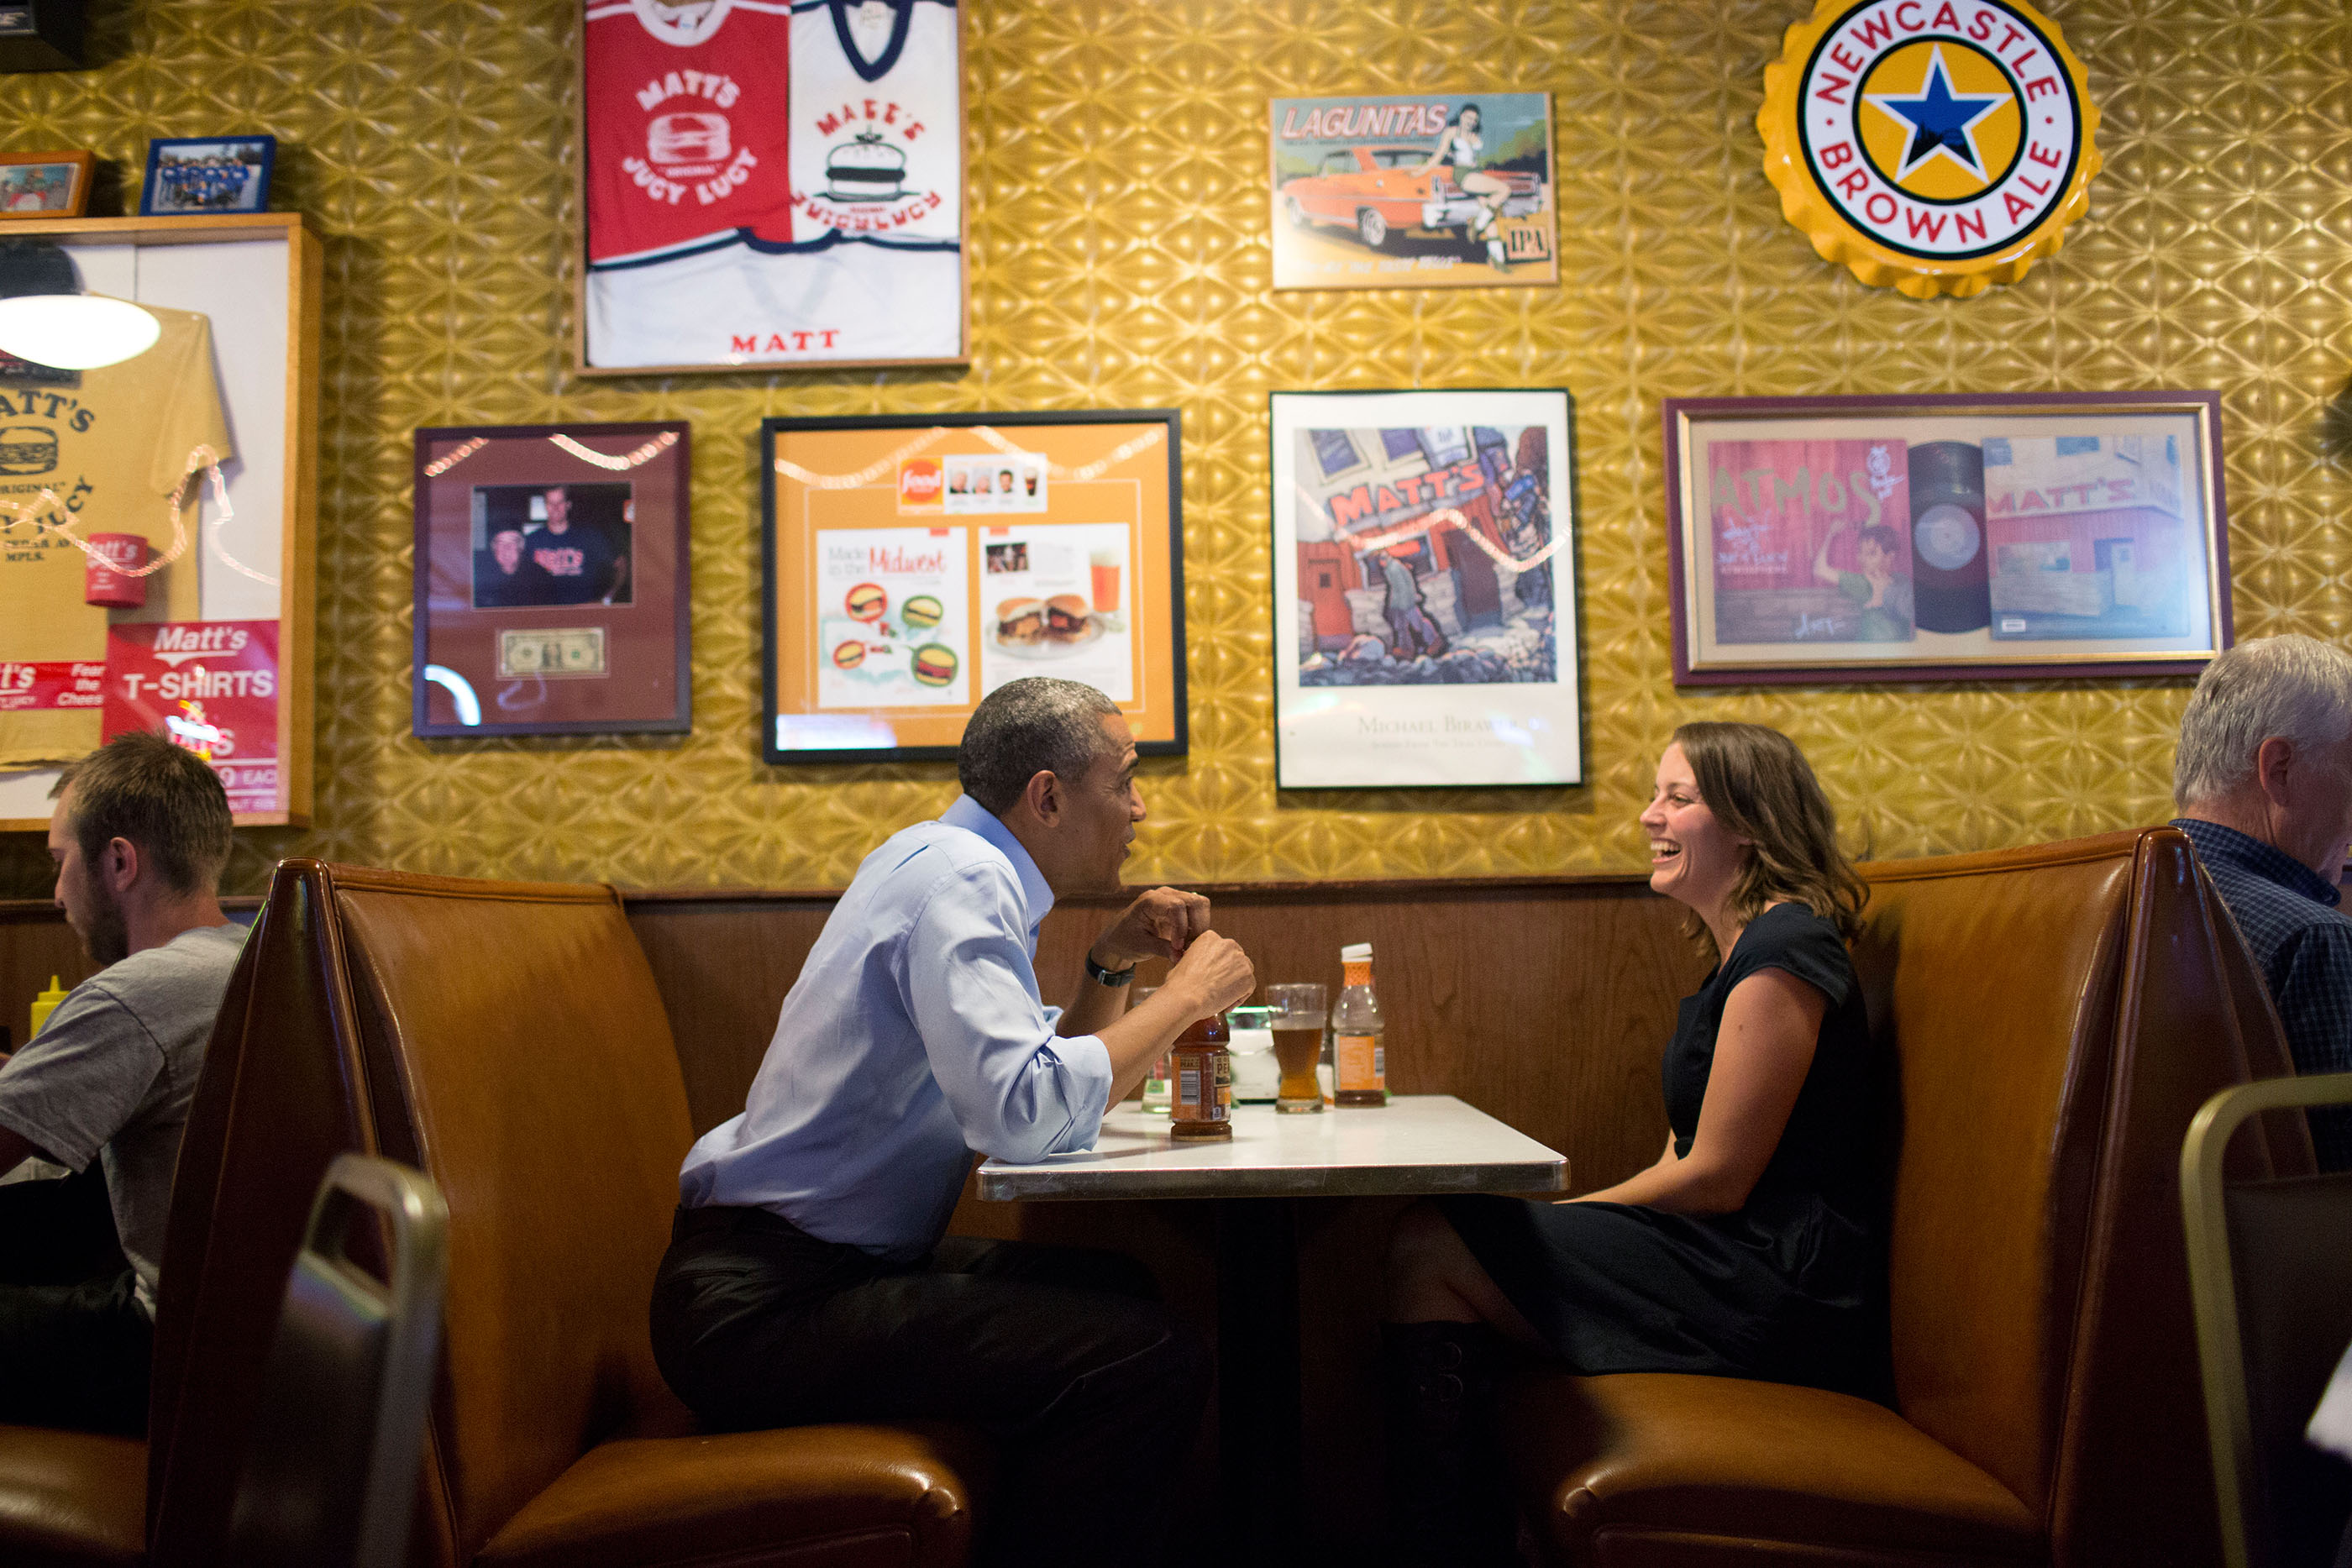 Minnesota, June 26, 2014. Talking with letter writer Rebekah Erler at Matt's Bar in Minneapolis. (Official White House Photo by Pete Souza)